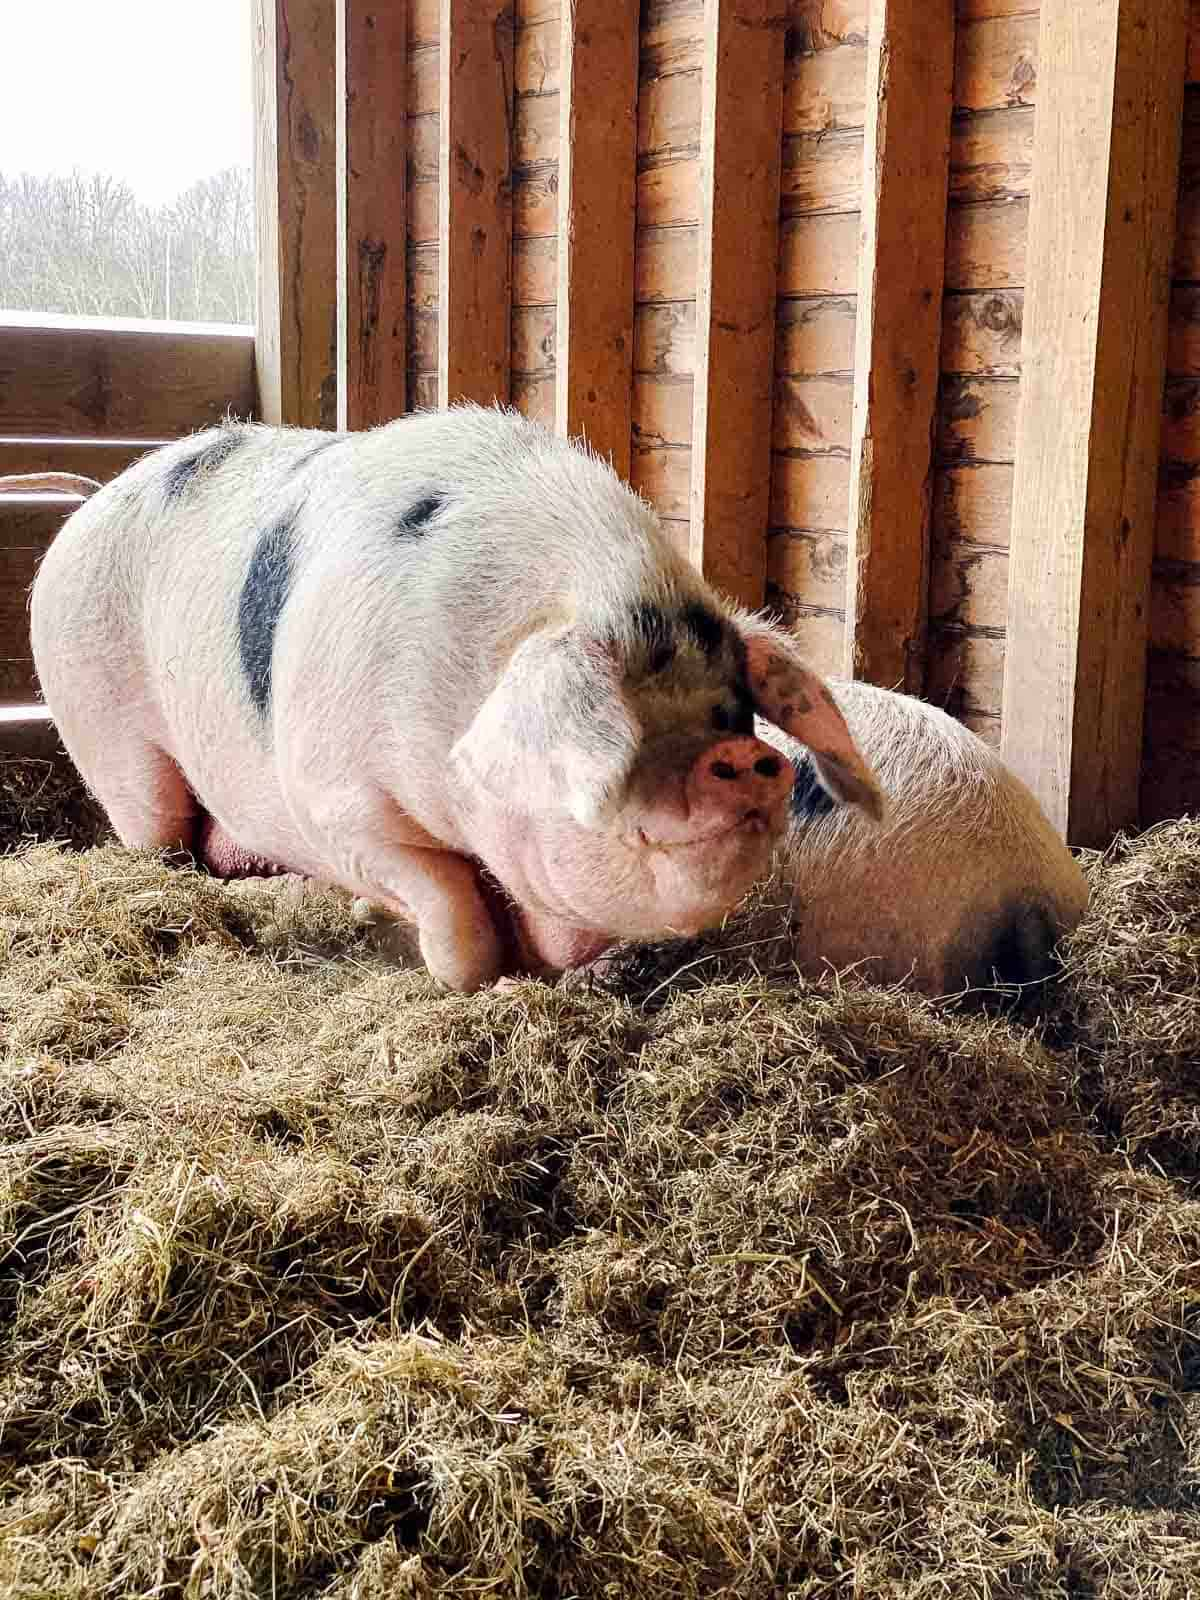 two large pink pigs with black spots on a bed of hay in barn